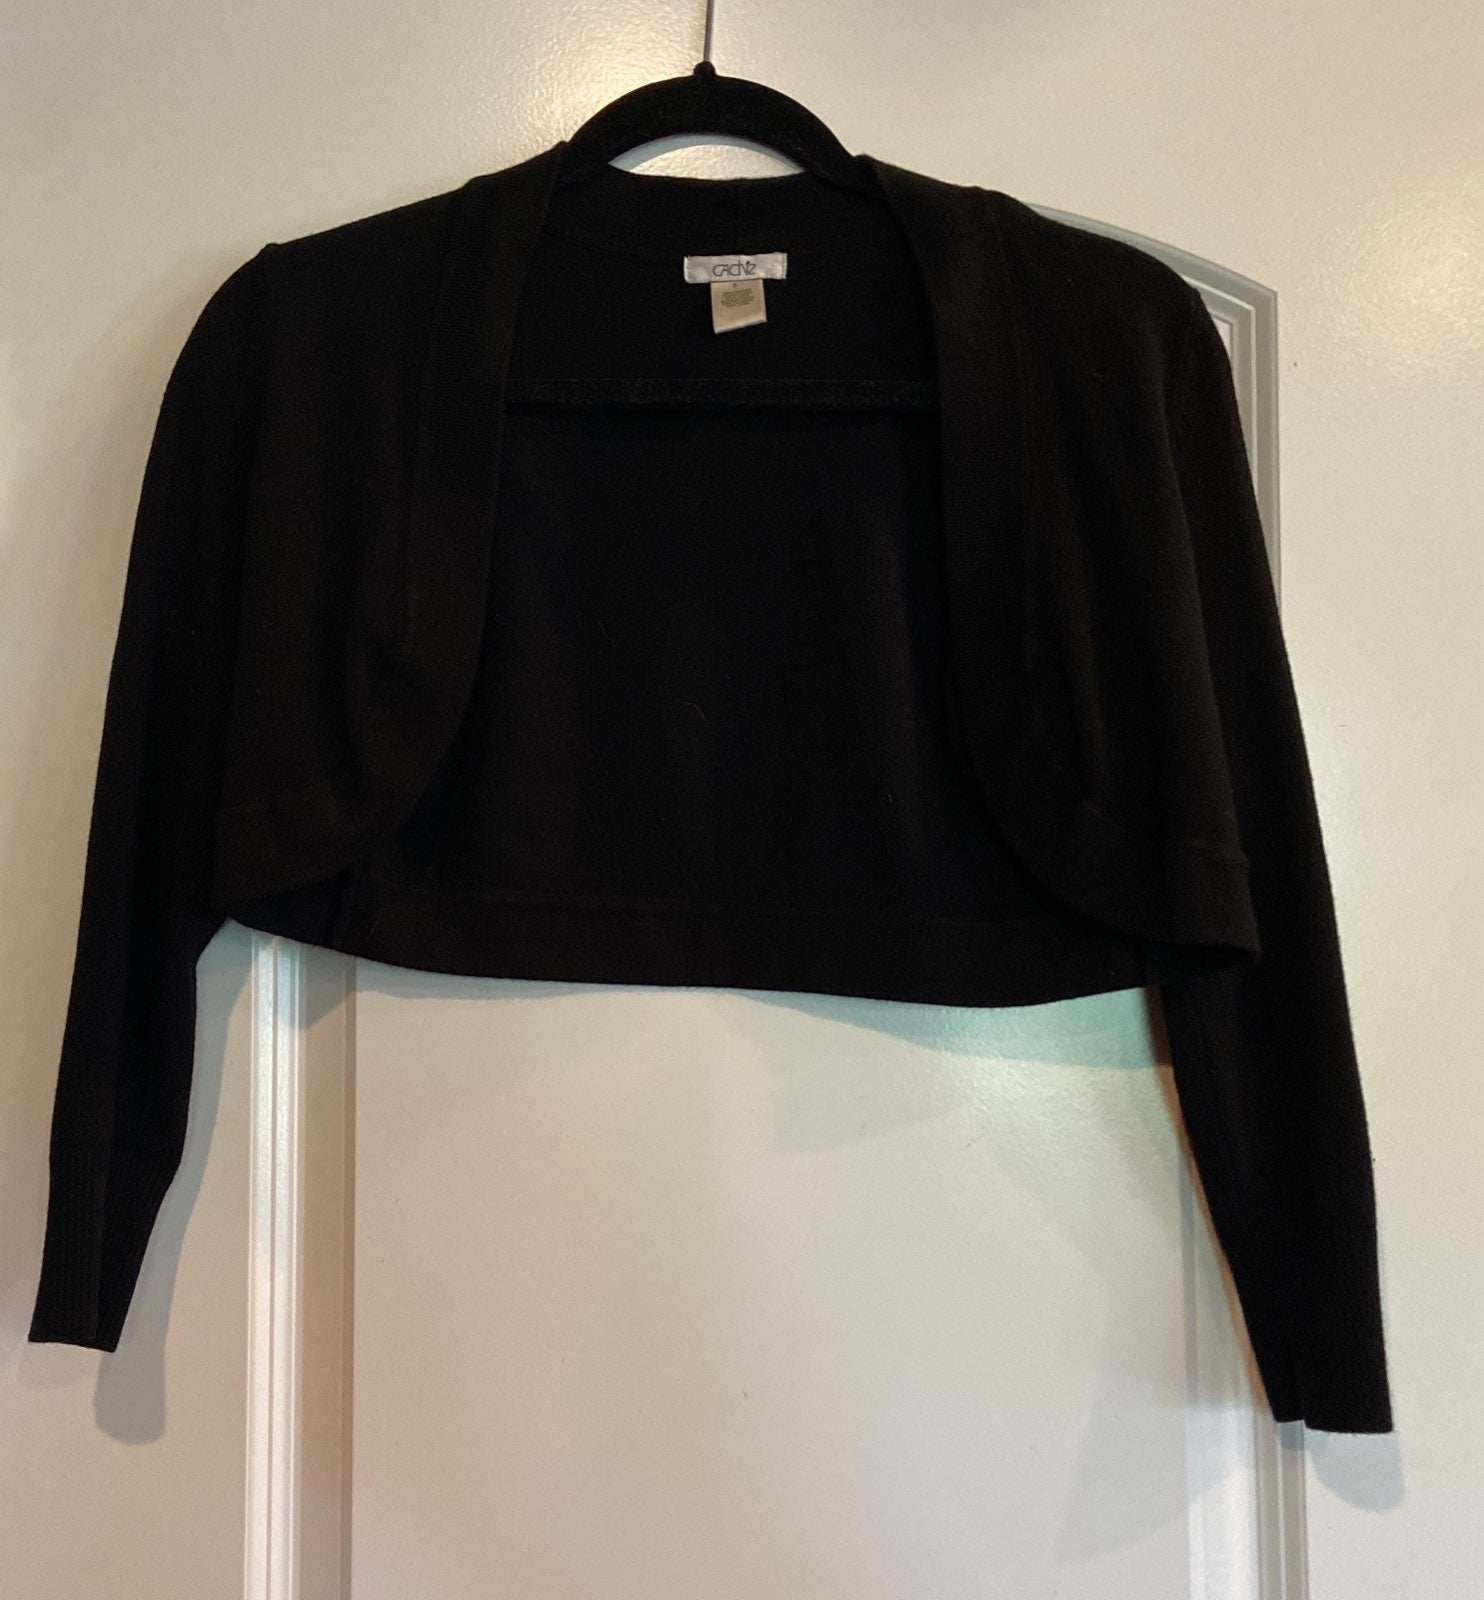 Cache black shrug sweater sz S